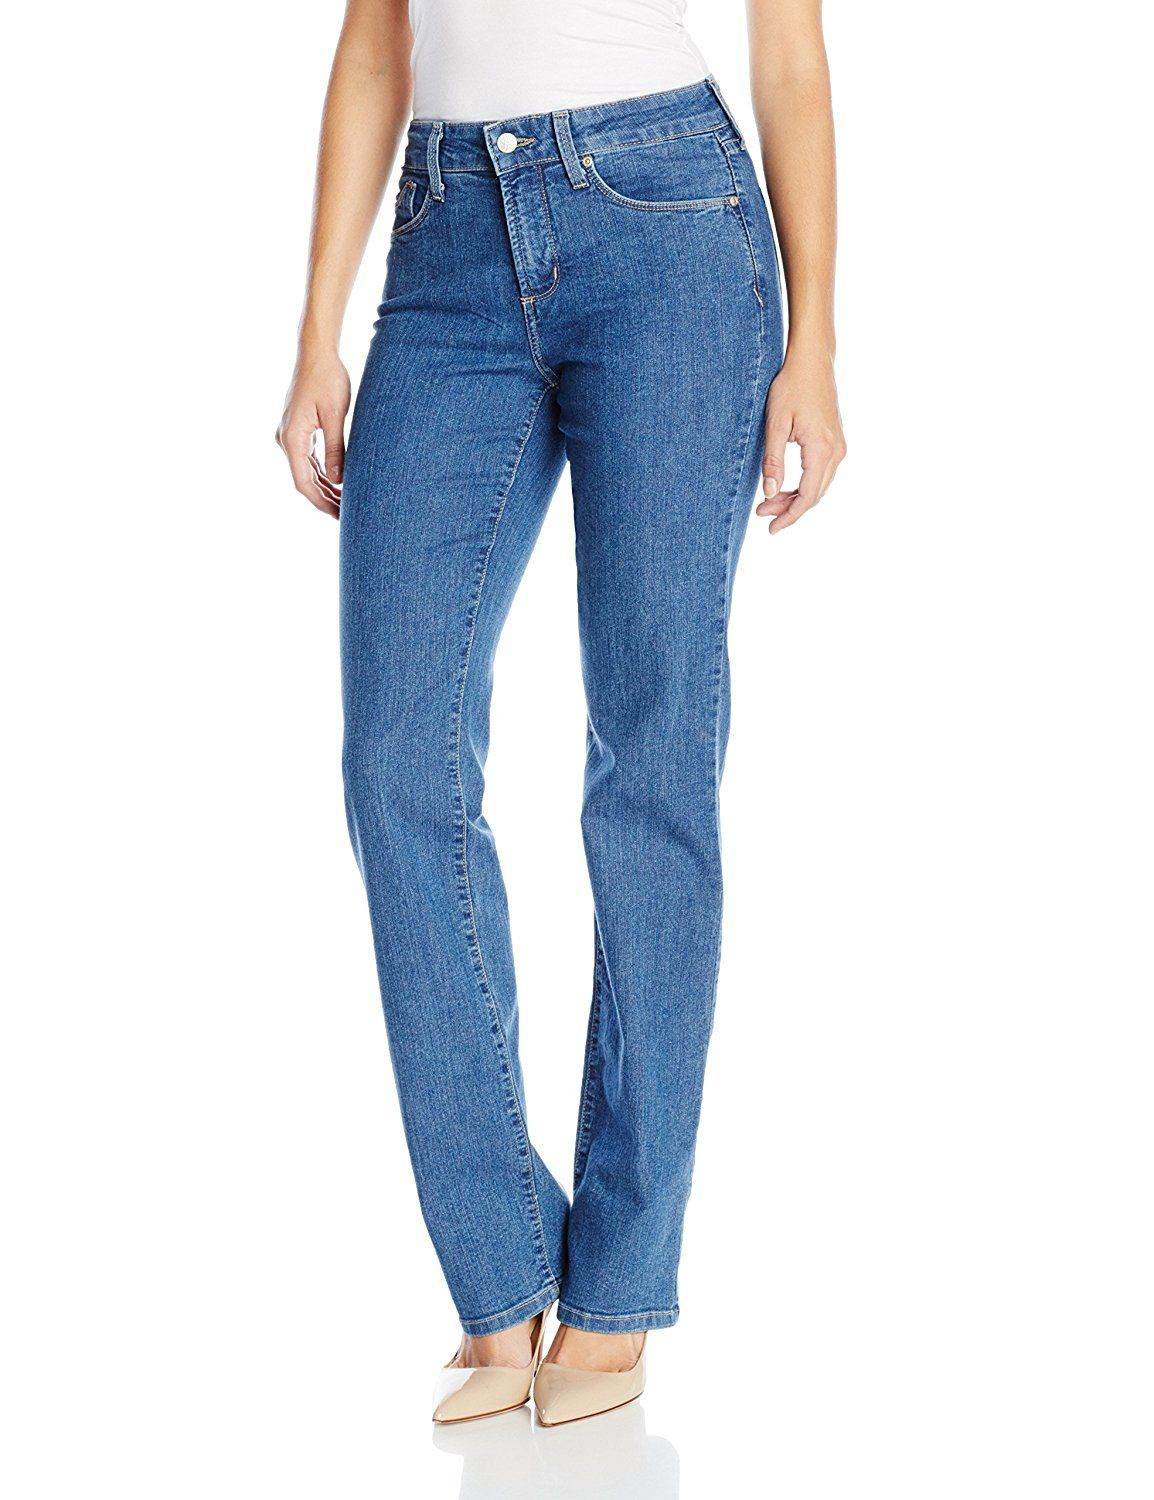 Womens Marylin Straight Jeans His X7N31C2o58